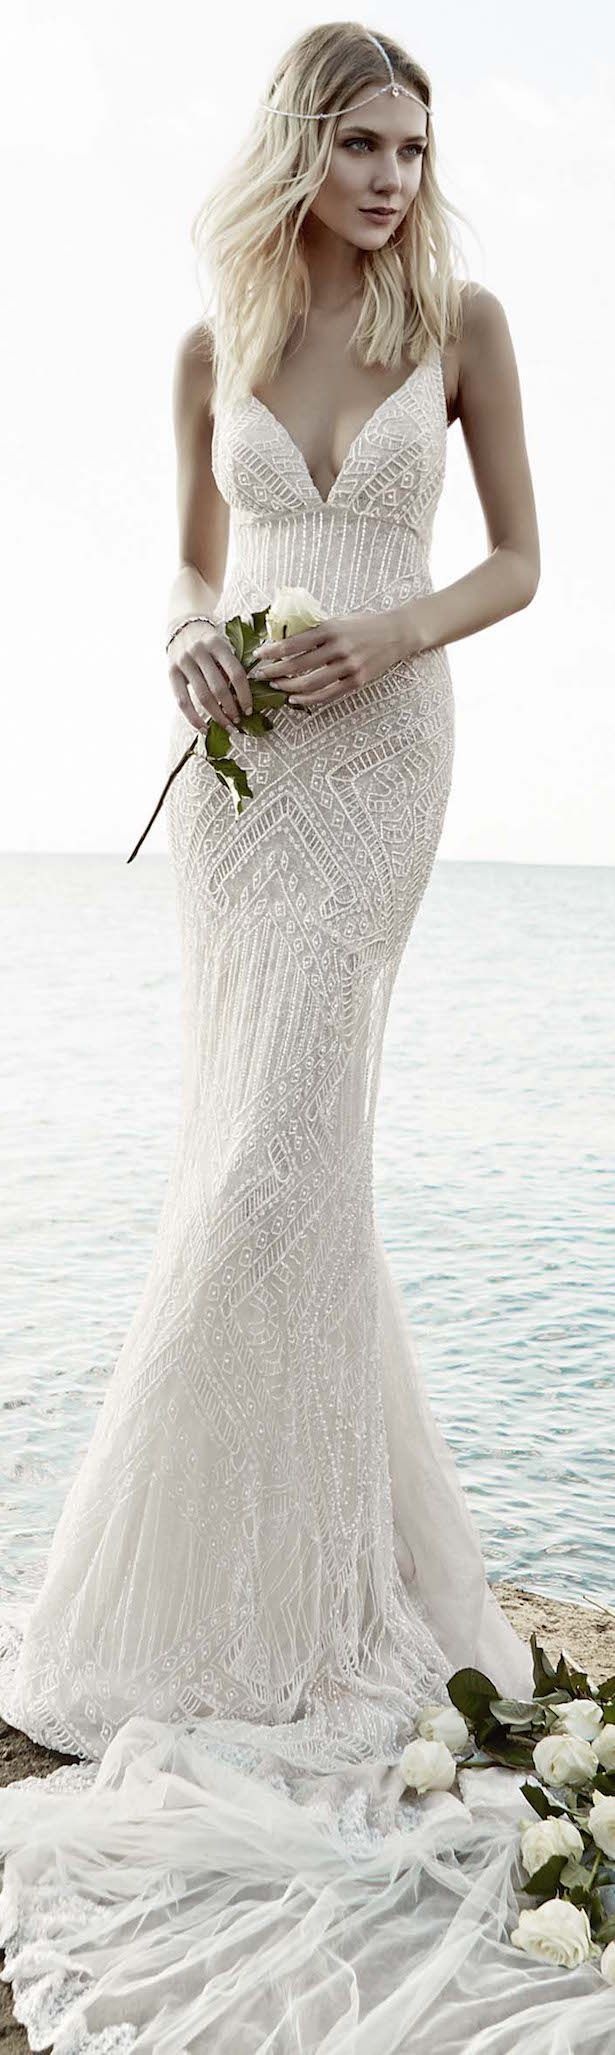 Designer beach wedding dresses  Victoria KyriaKides Bridal Fall   Floral Constellations